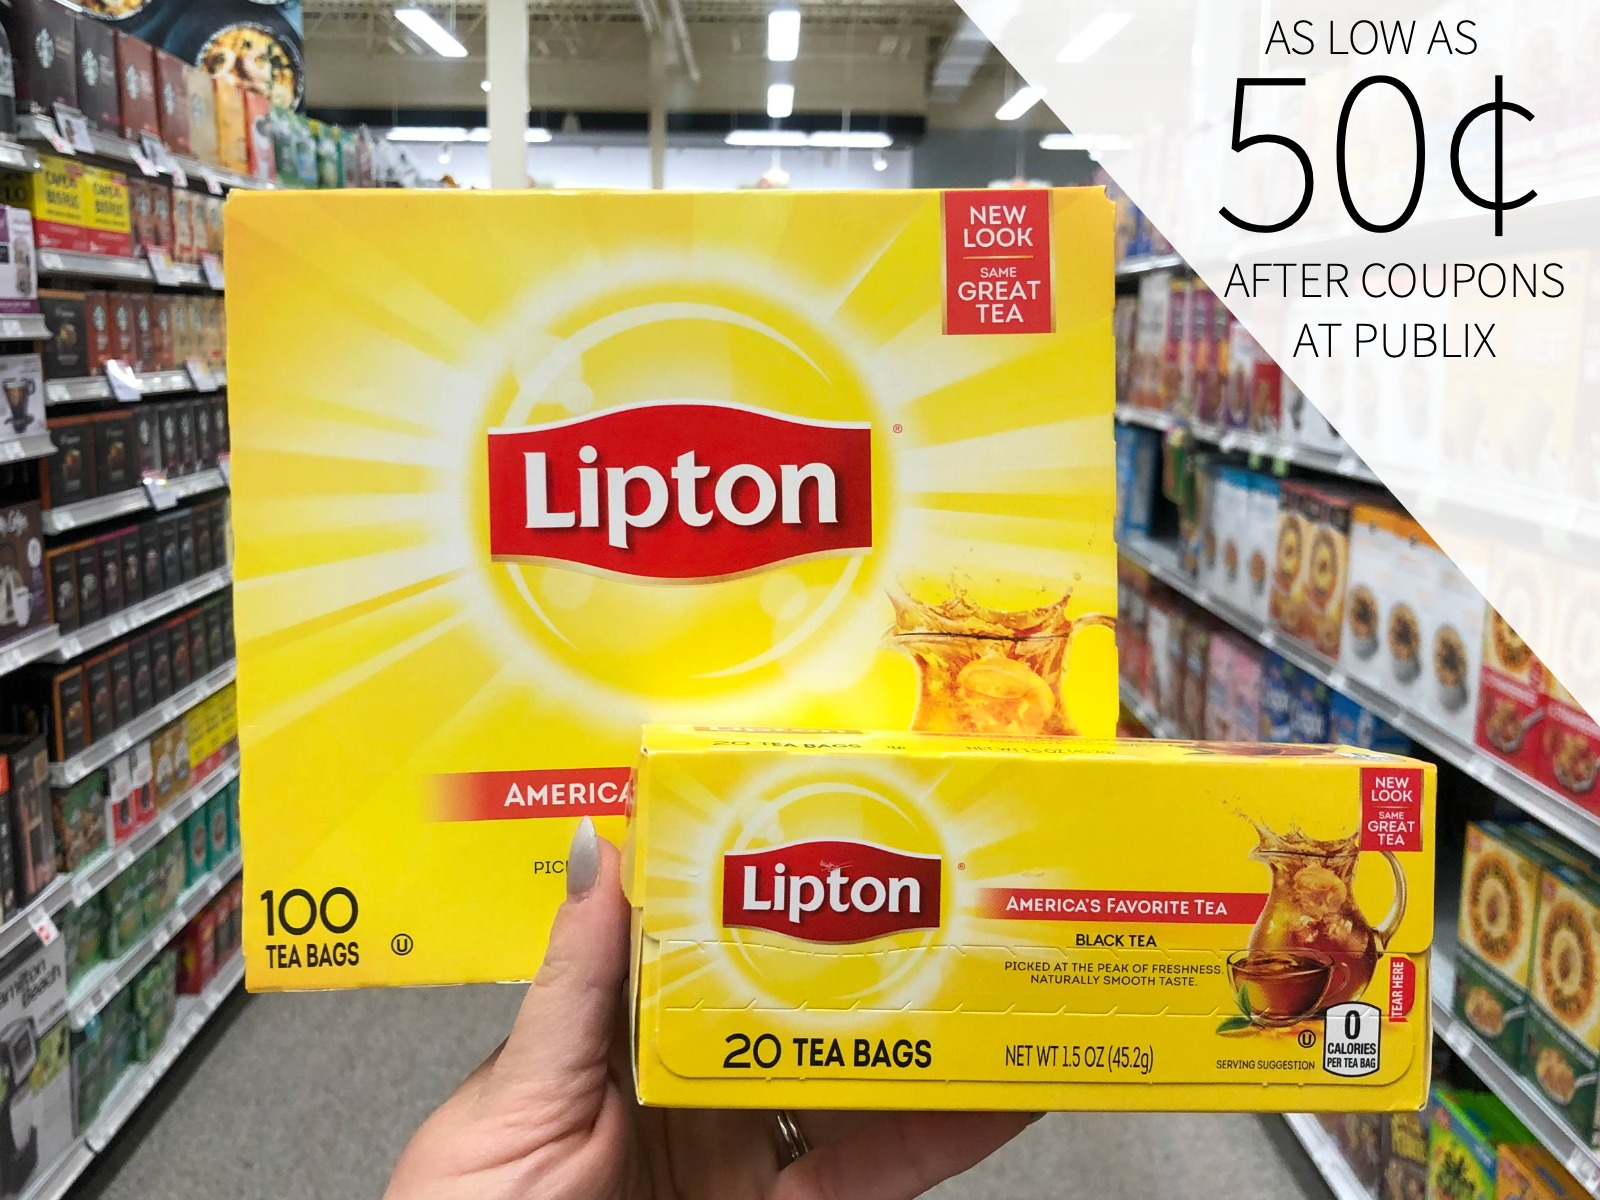 Amazing Deals On Lipton Tea At Publix - Stock Up For The Holidays! on I Heart Publix